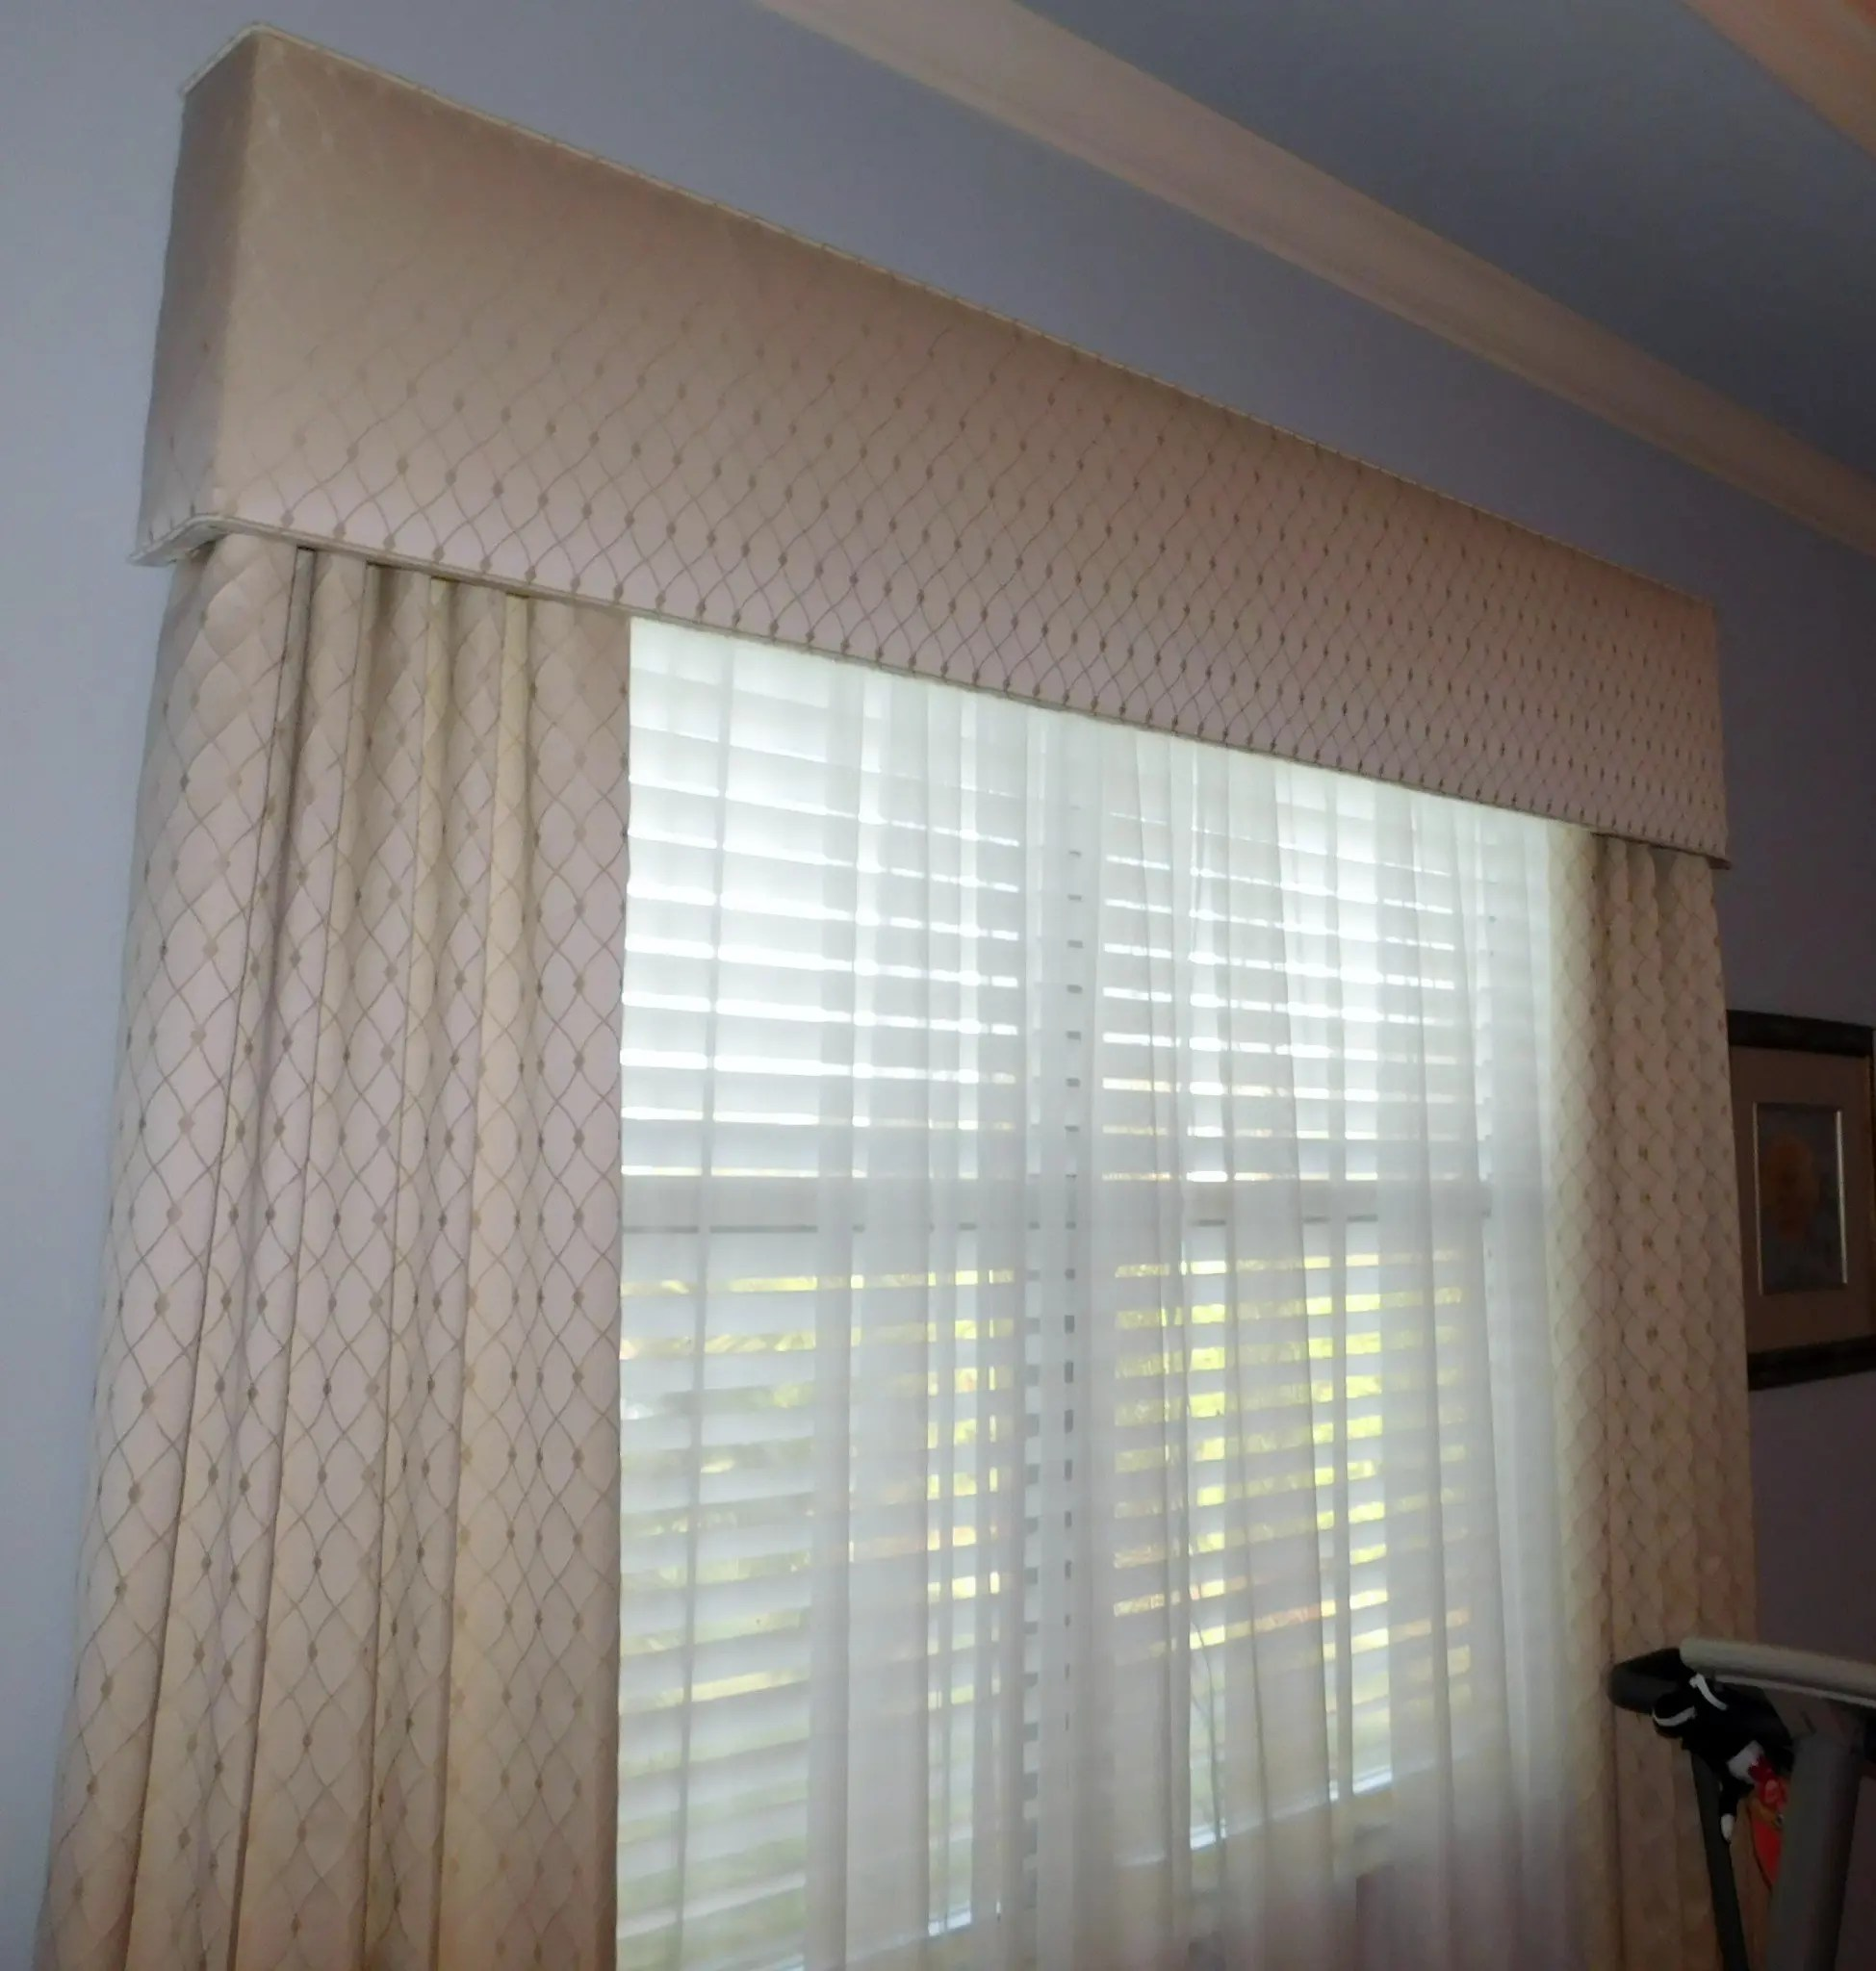 Window Coverings To Keep Heat Out The Best In Summer Window Treatments B G Window Fashions